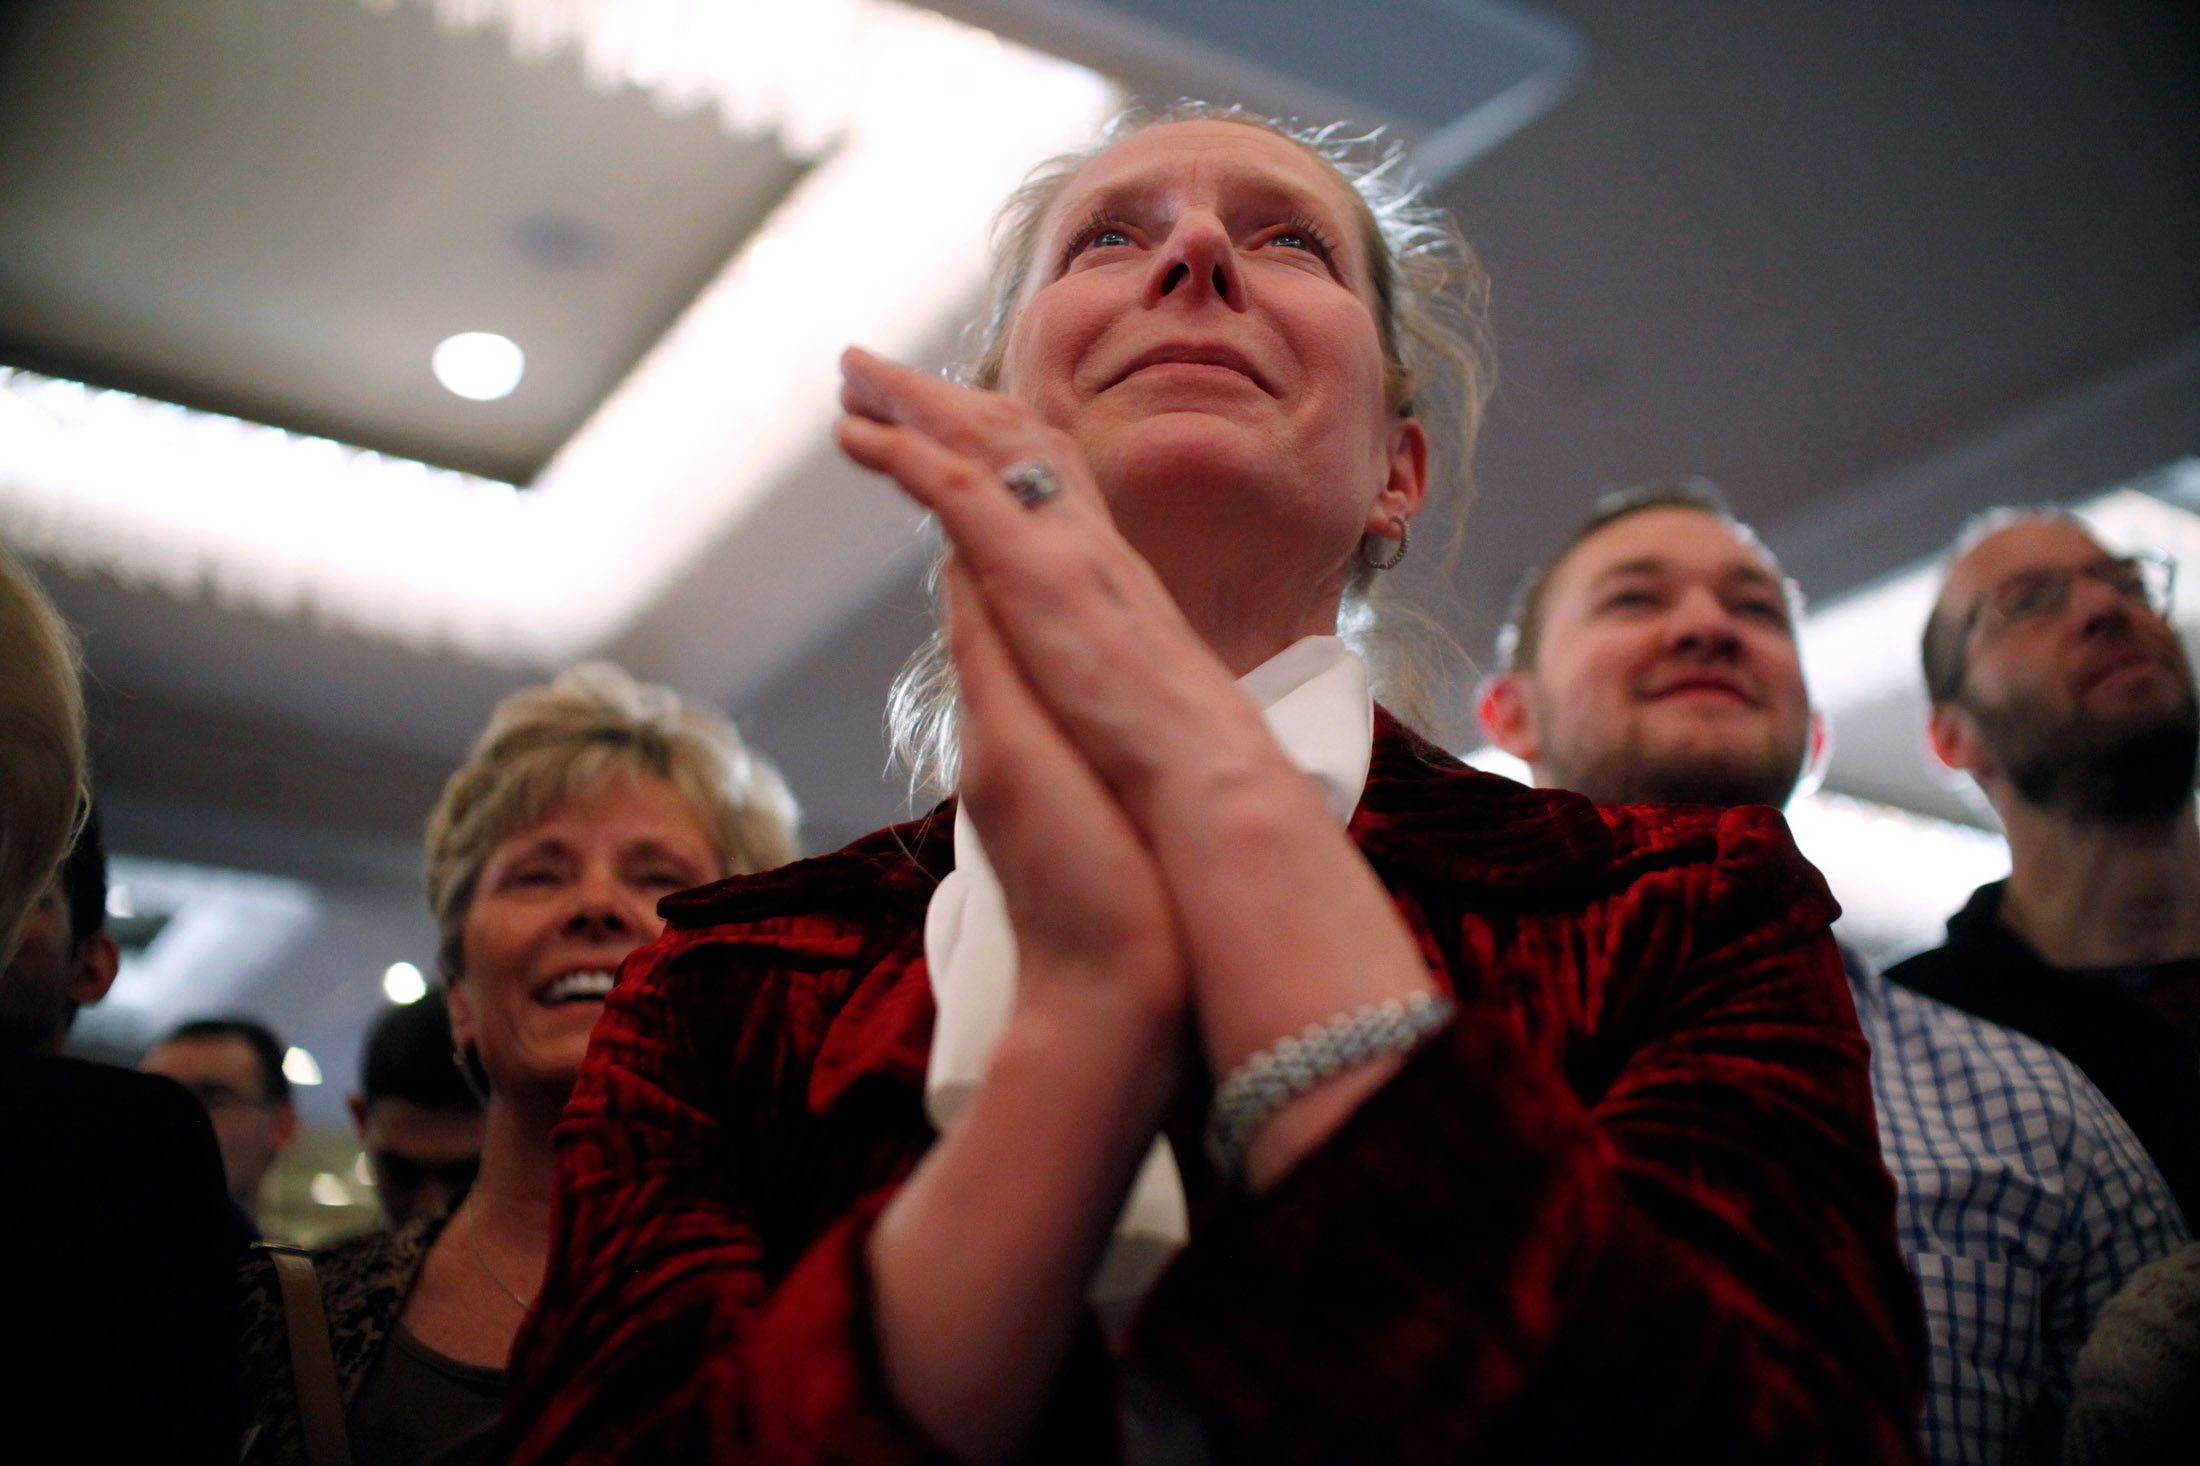 A supporter of Republican presidential candidate Marco Rubio clasps her hands as she watches the candidate speak at a Primary night watch party at the Radisson in Manchester, New Hampshire on February 9, 2016. Early results showed Rubio finishing in fifth place in the nations first Presidential Primary.